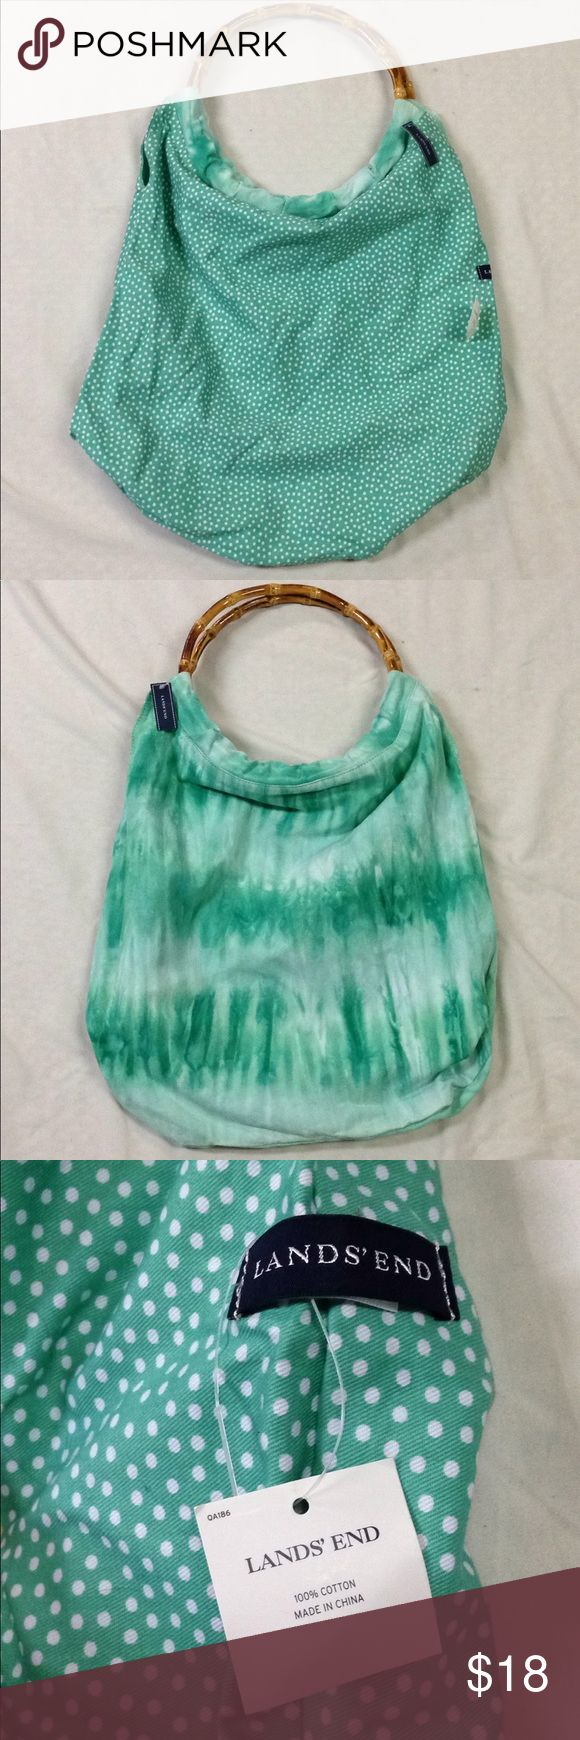 NWT Lands End reversible tote bag Brand new with tags! Reversible from polka dots to tye dye with faux bamboo handles. Measures approx 16x18 Lands' End Bags Totes